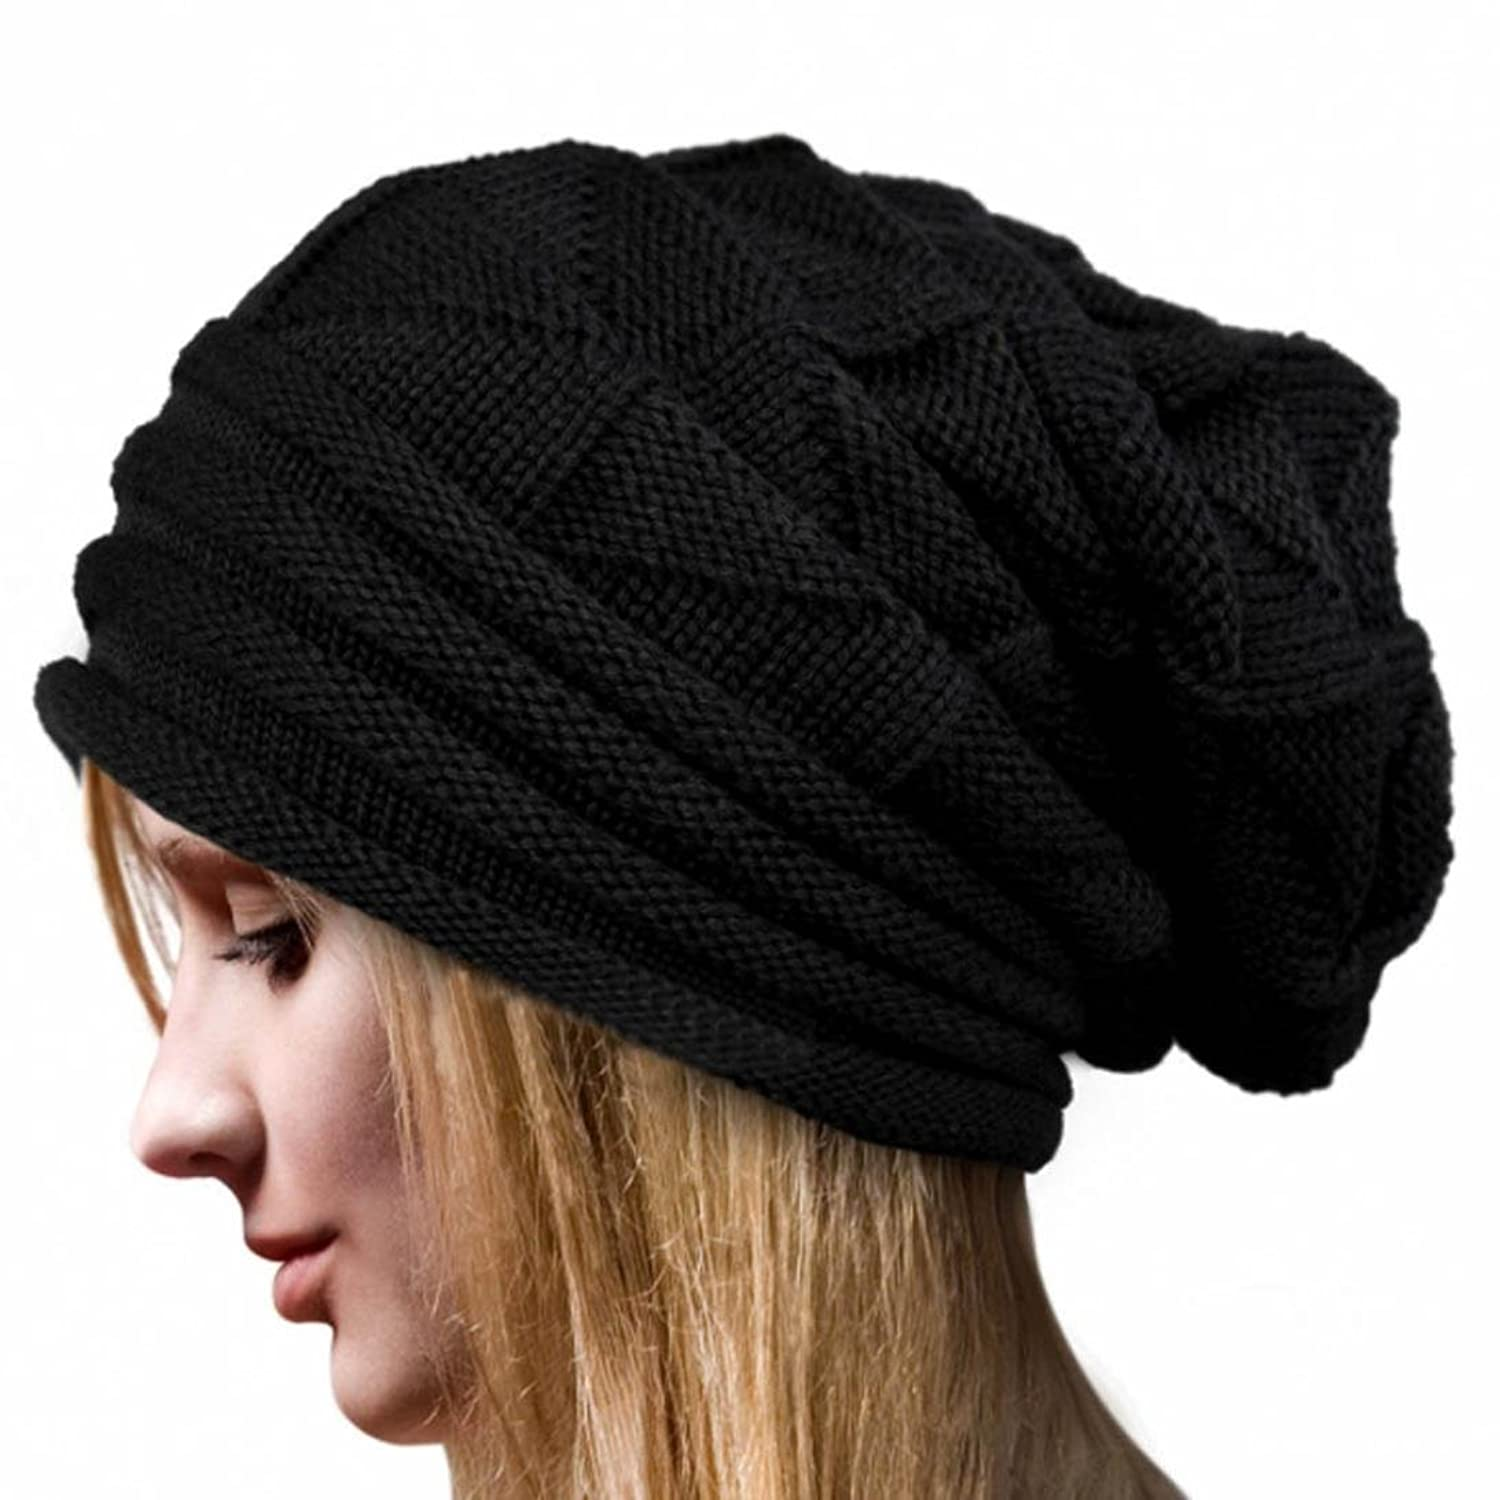 Clearance! Women Fashion Cable Knit Wool Winter Warm Hat Soft Slouchy Beanie Skully Cap